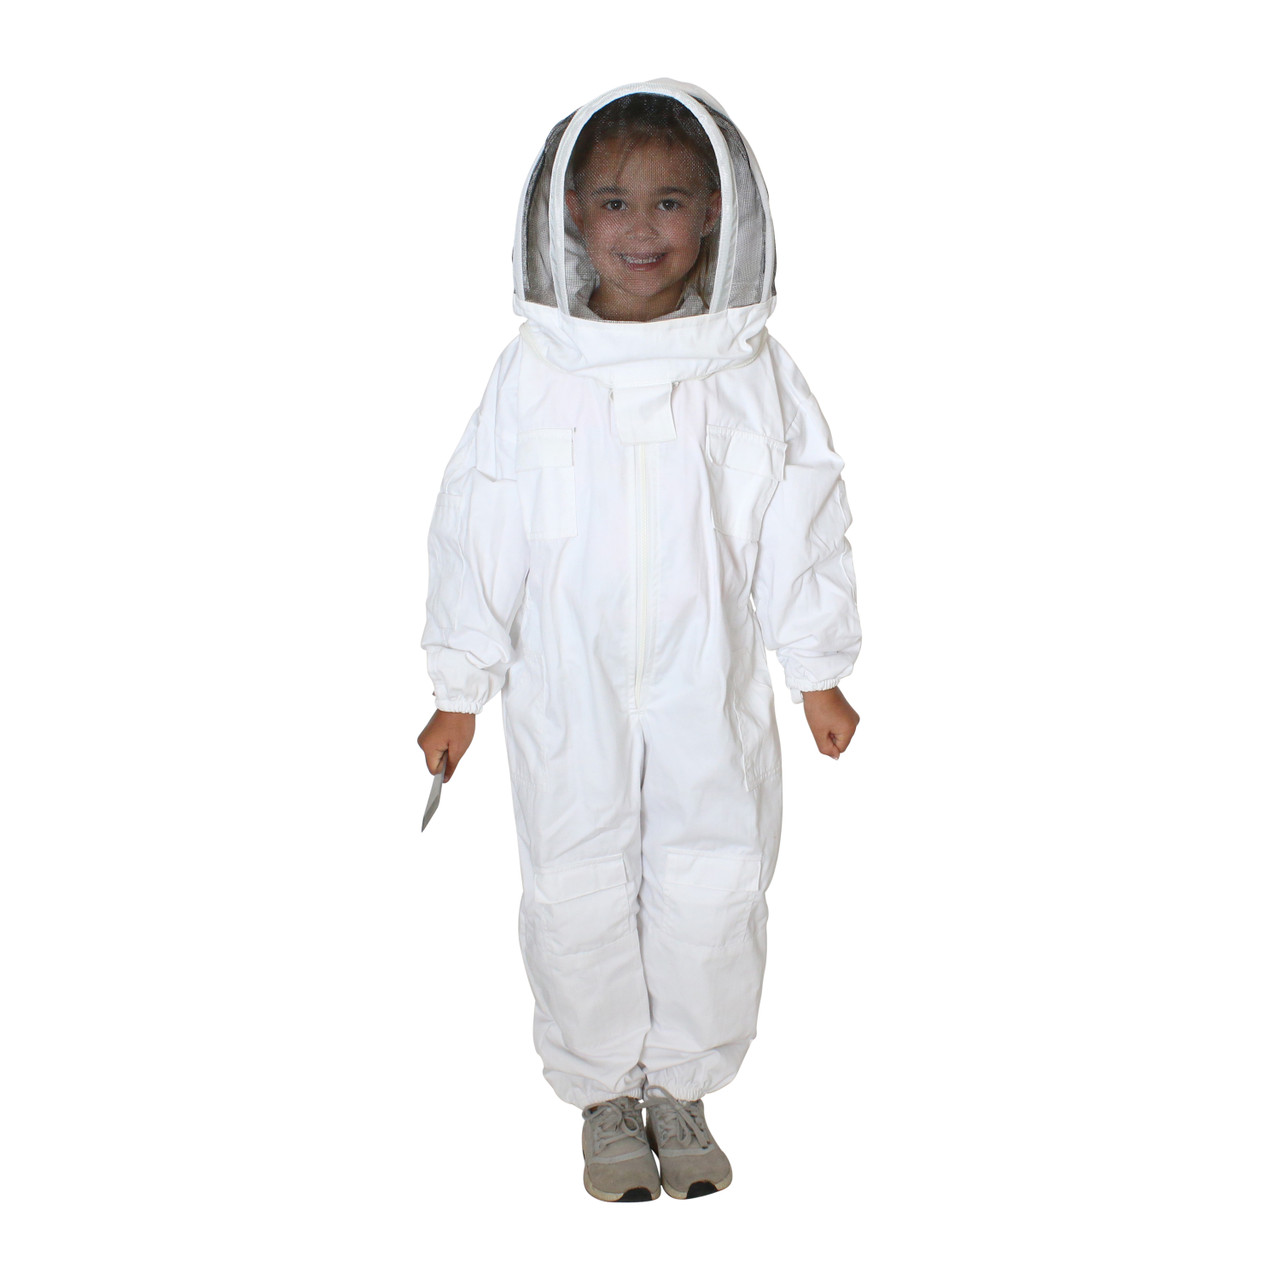 Ceracell Childrens Overall Suit